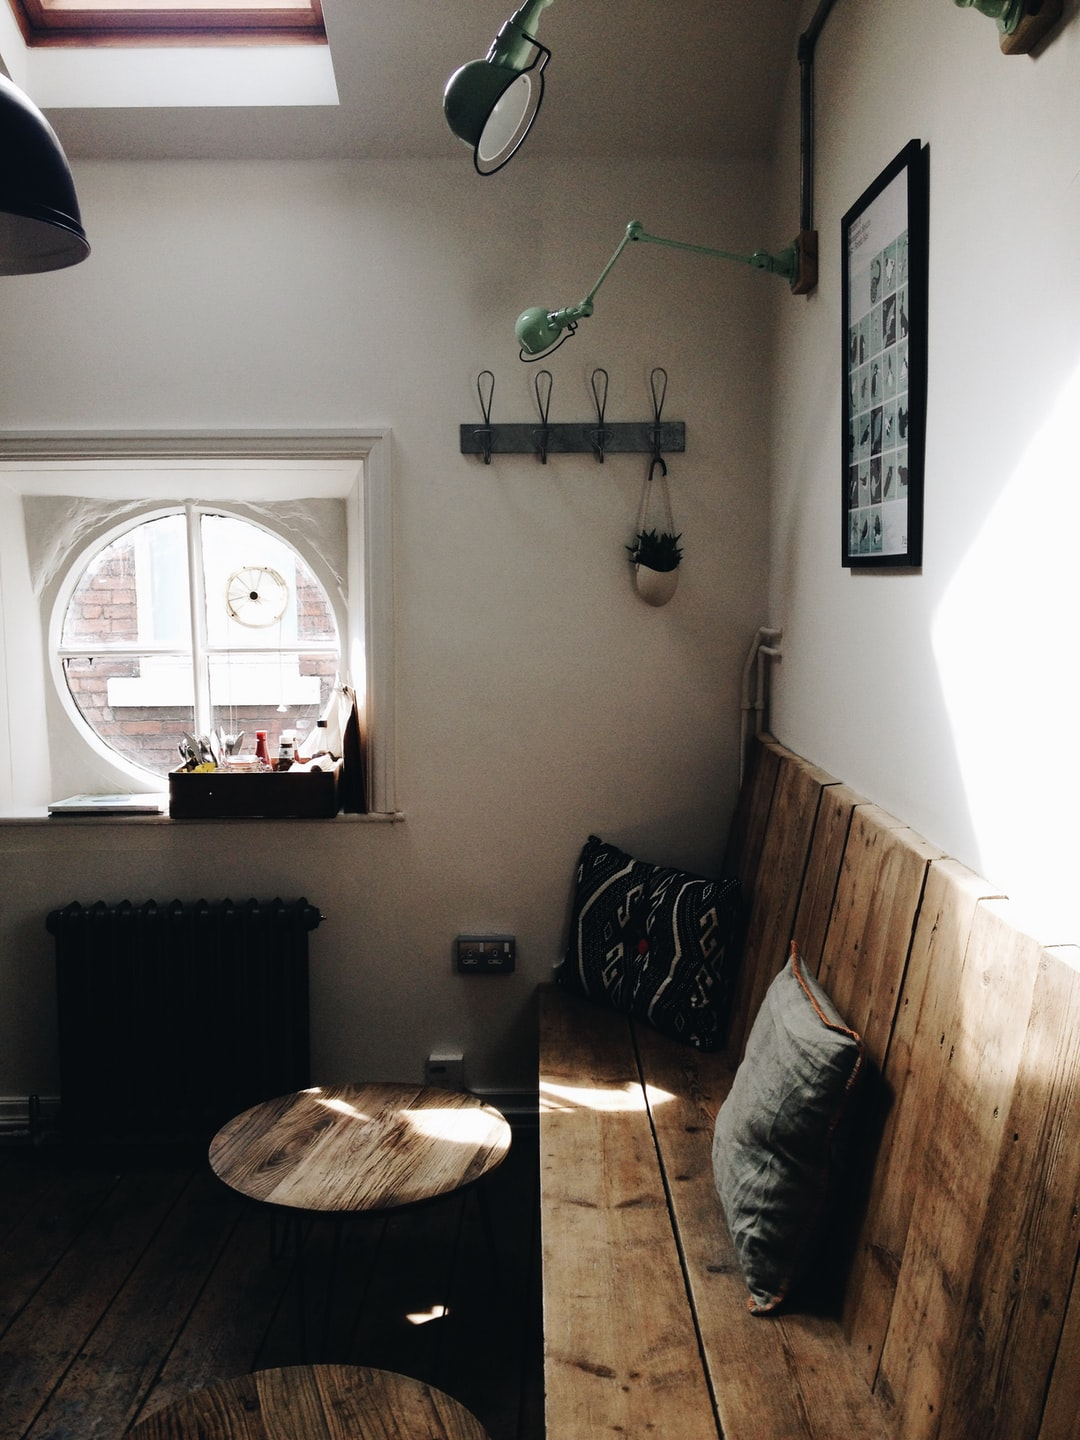 Vintage room with a bench